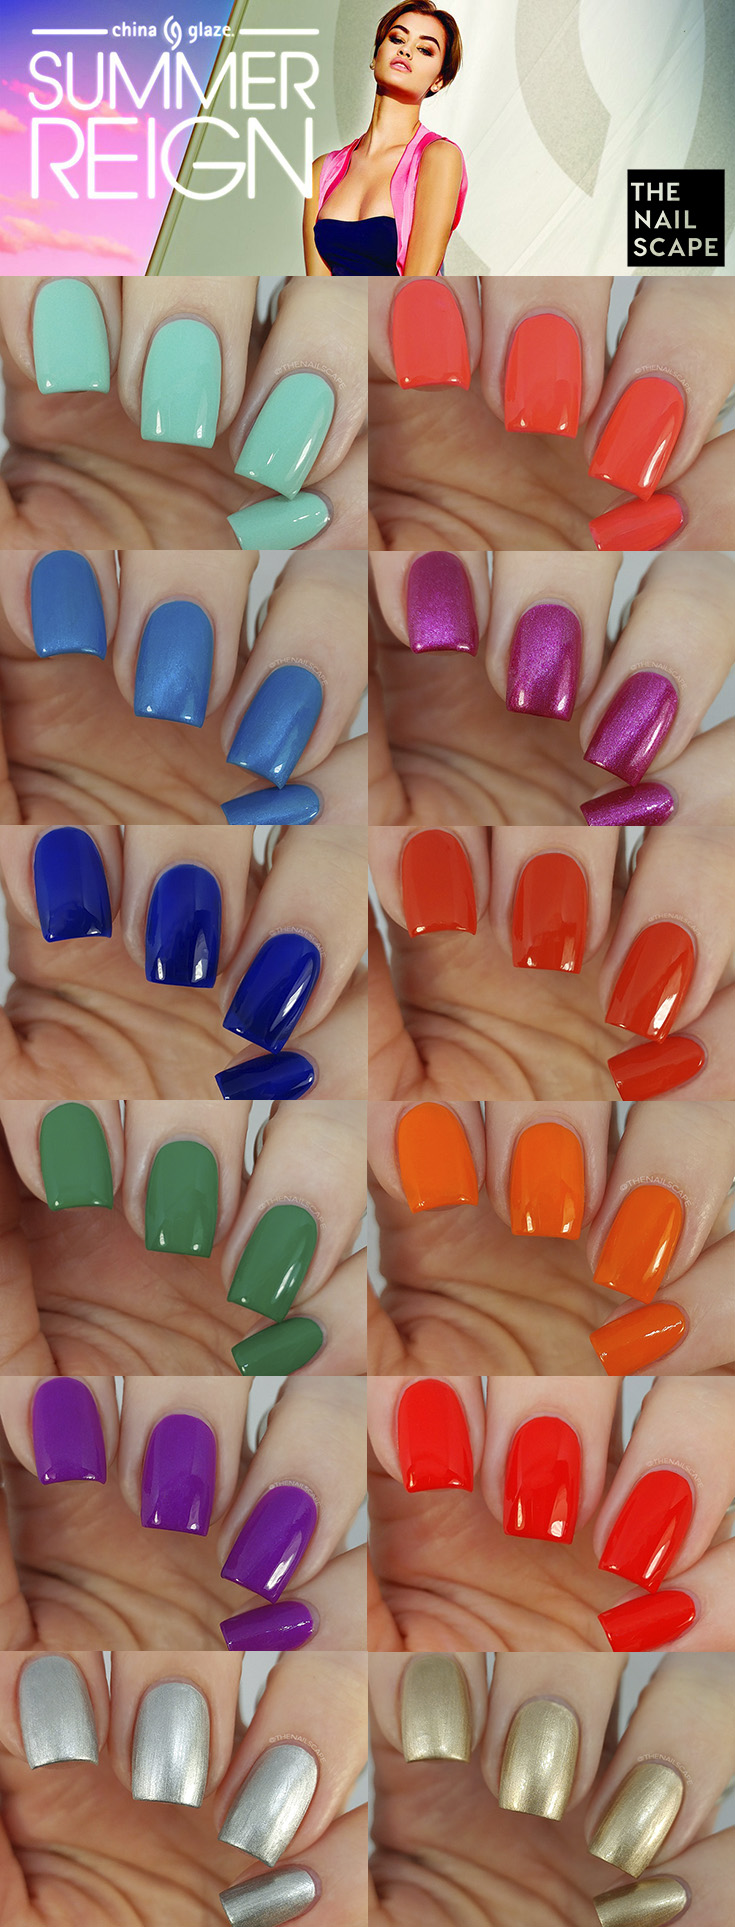 CHINA GLAZE SUMMER REIGN SWATCHES on The Nailscape